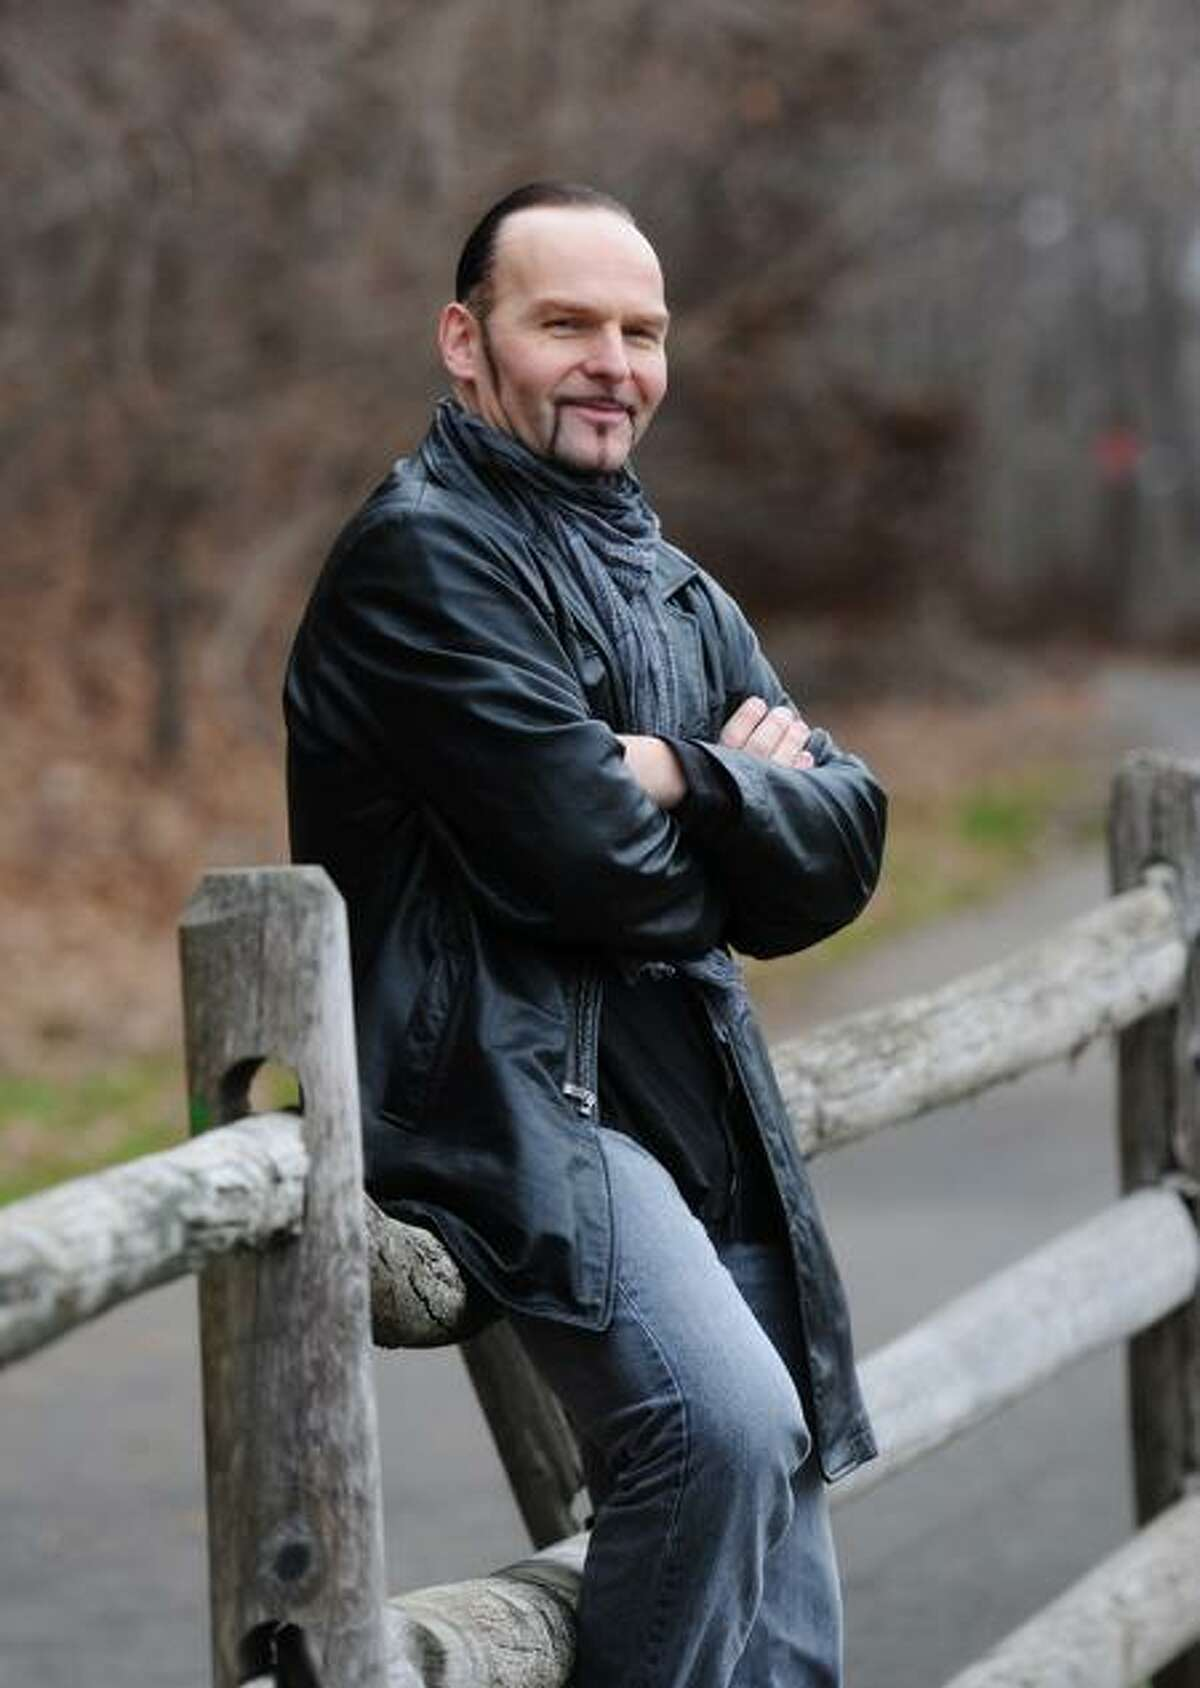 """Hamden-- Alex Ziwak, owner of Ziwak's Martial Arts in Hamden, has landed a featured role in """"Pawn,"""" a movie directed by David A. Armstrong and starring Ray Liotta, Nikki Reed and Forest Whitaker. Peter Casolino/New Haven Register12/15/11"""